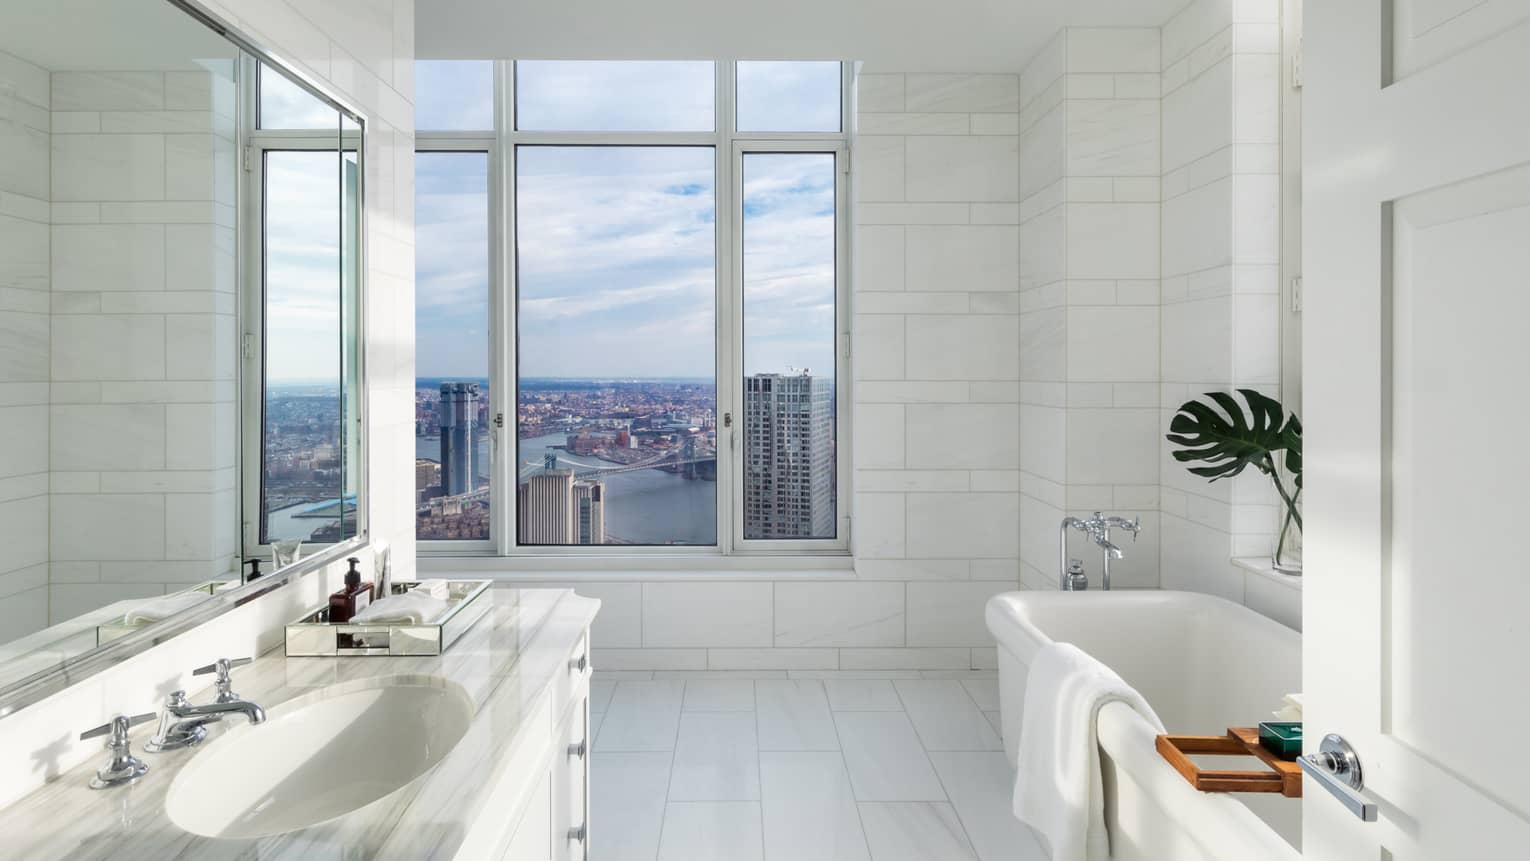 White marble bathroom, vanity, towel over tub by large picture window